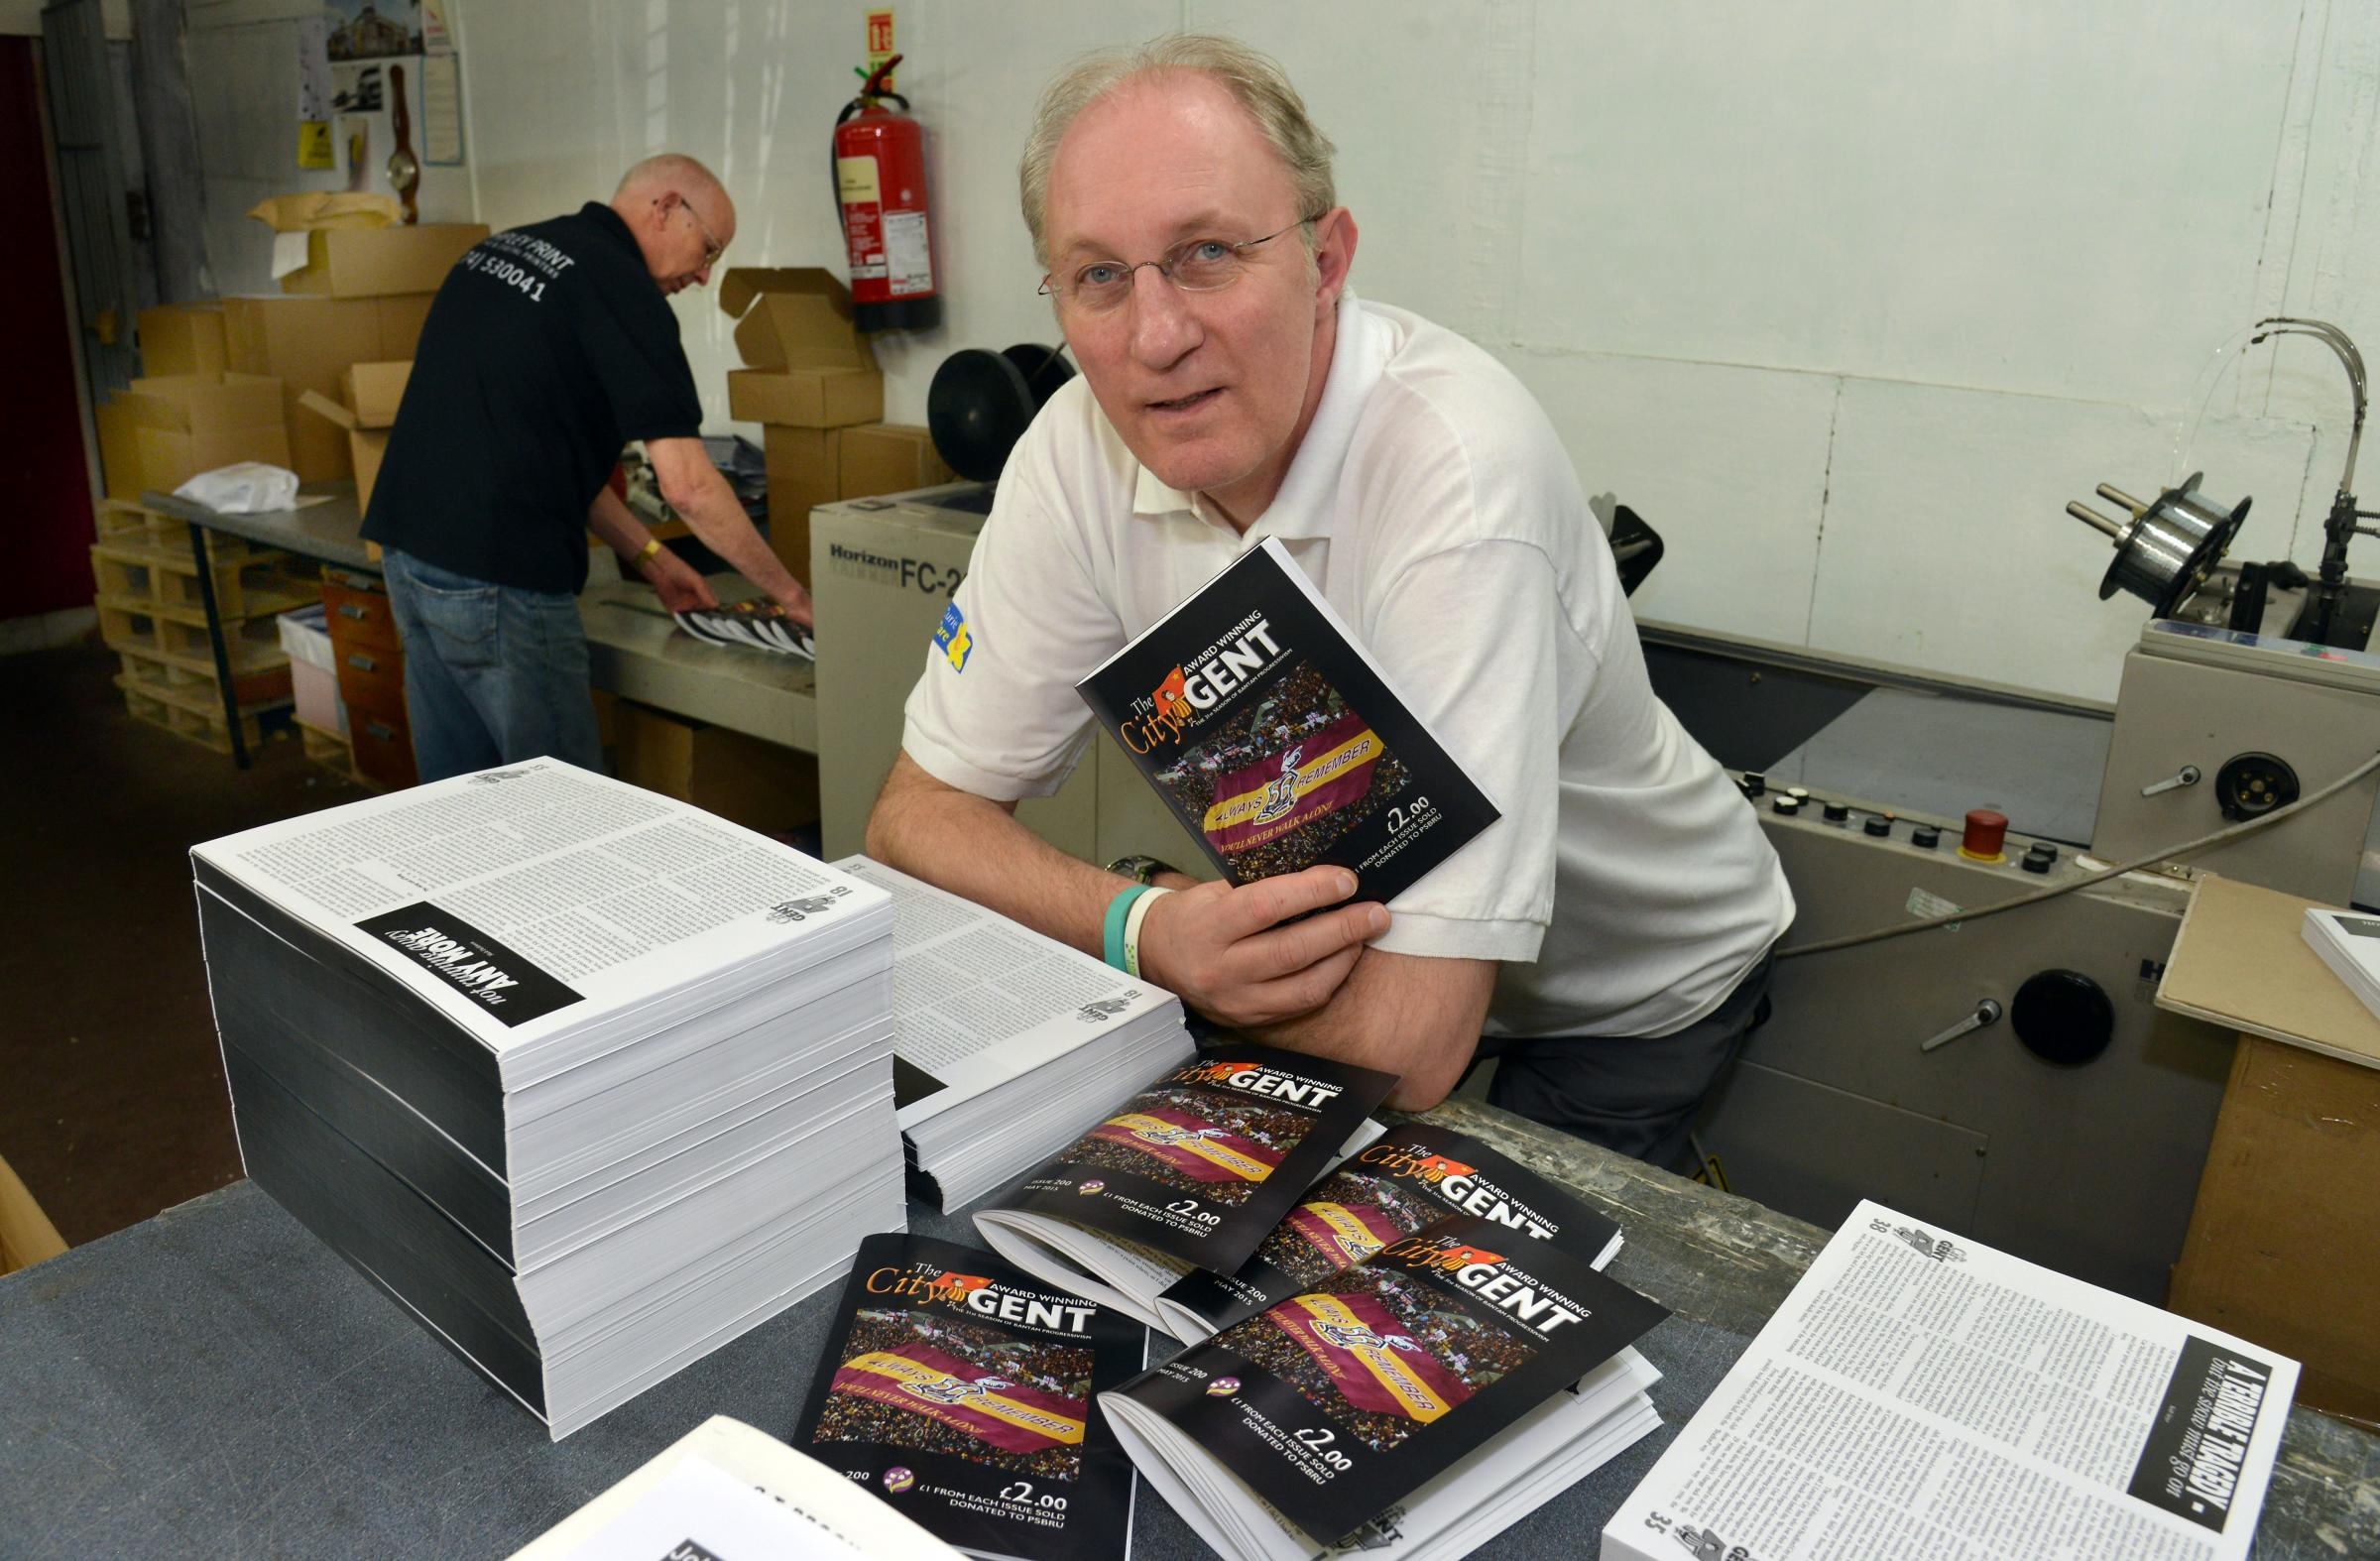 Mike Harrison, editor of the City Gent, sees the edition come off the press